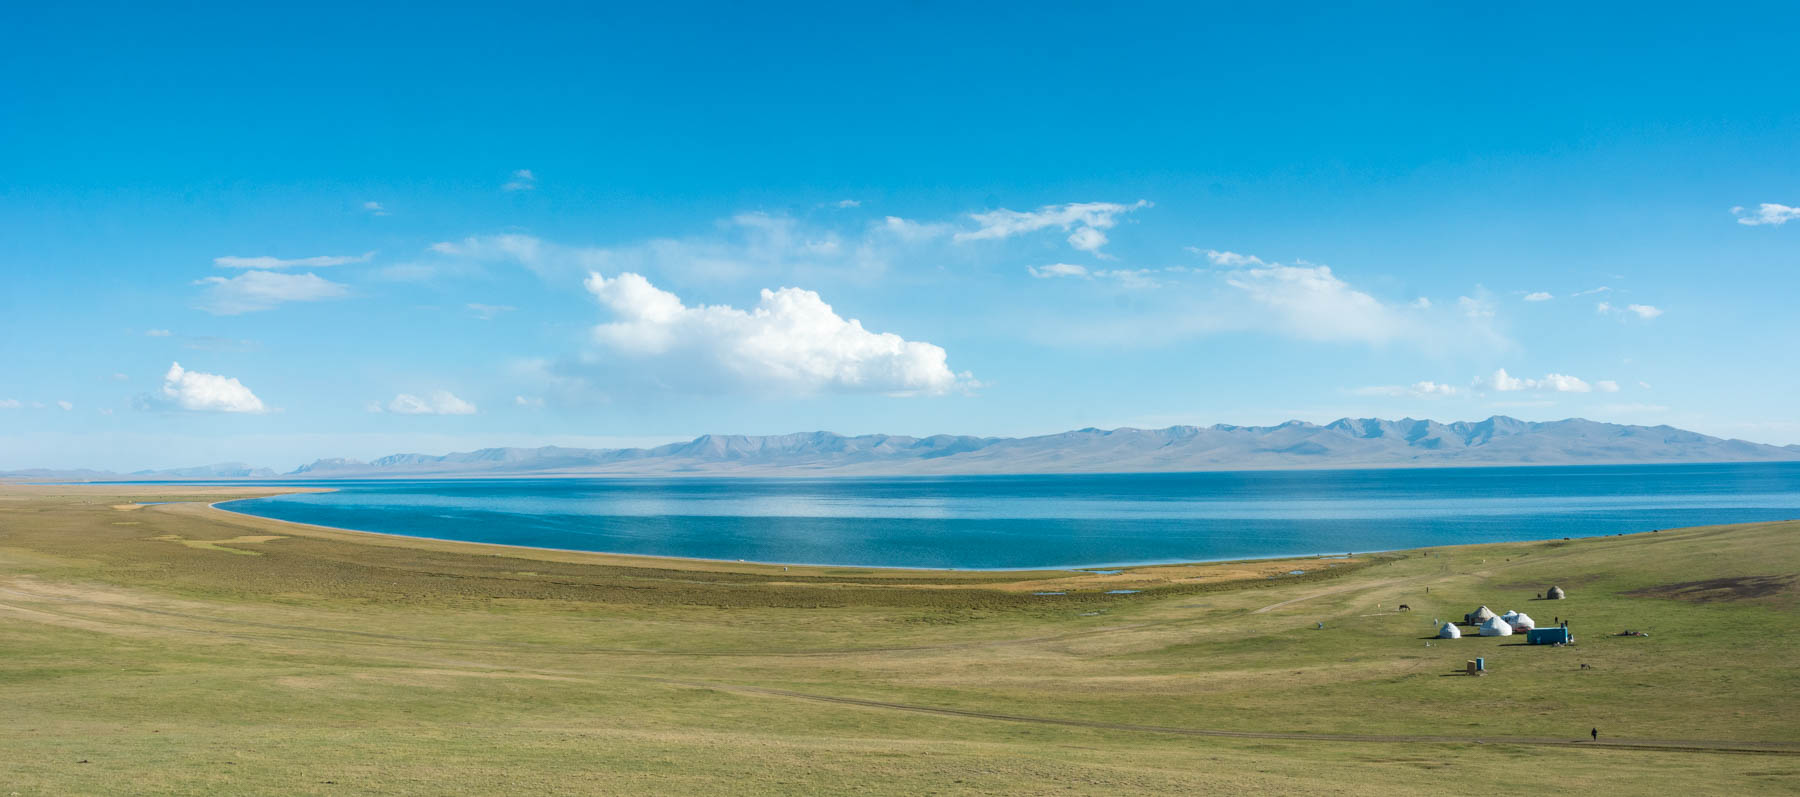 Panorama of Song Kul lake in Kyrgyzstan - Lost With Purpose